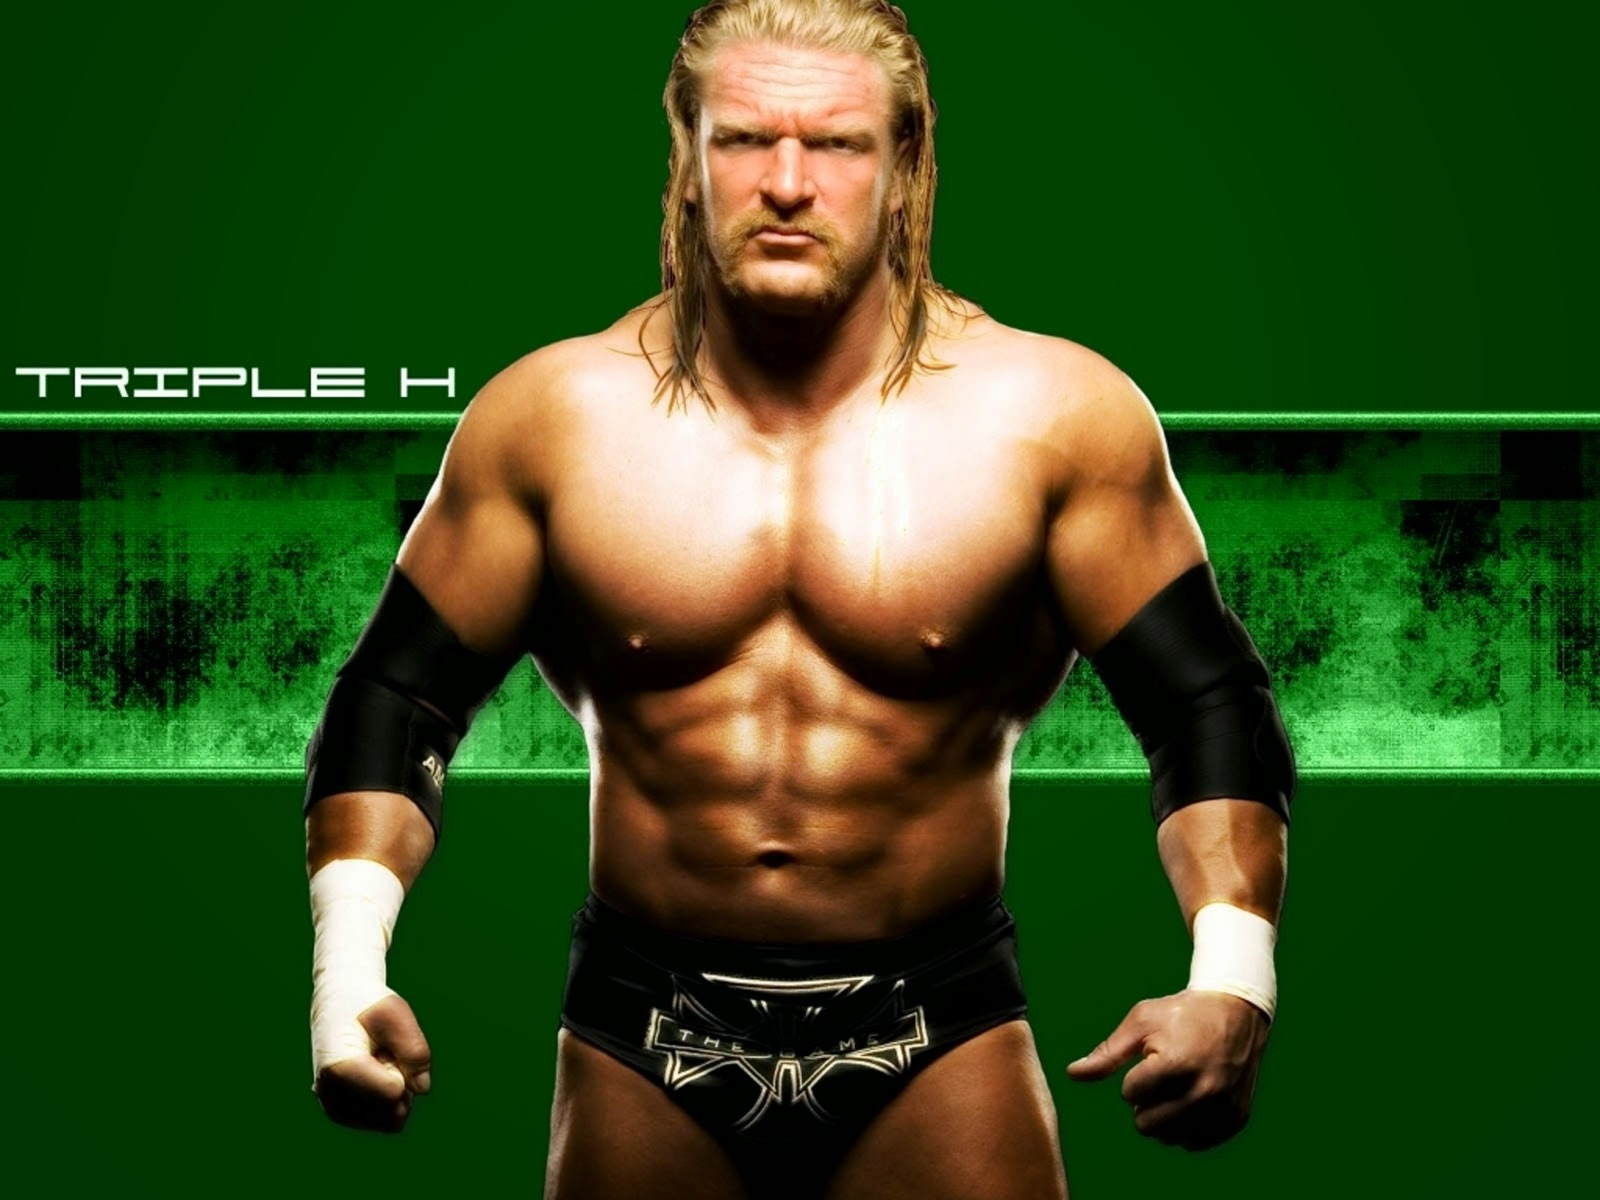 hhh free triple h wwe champion